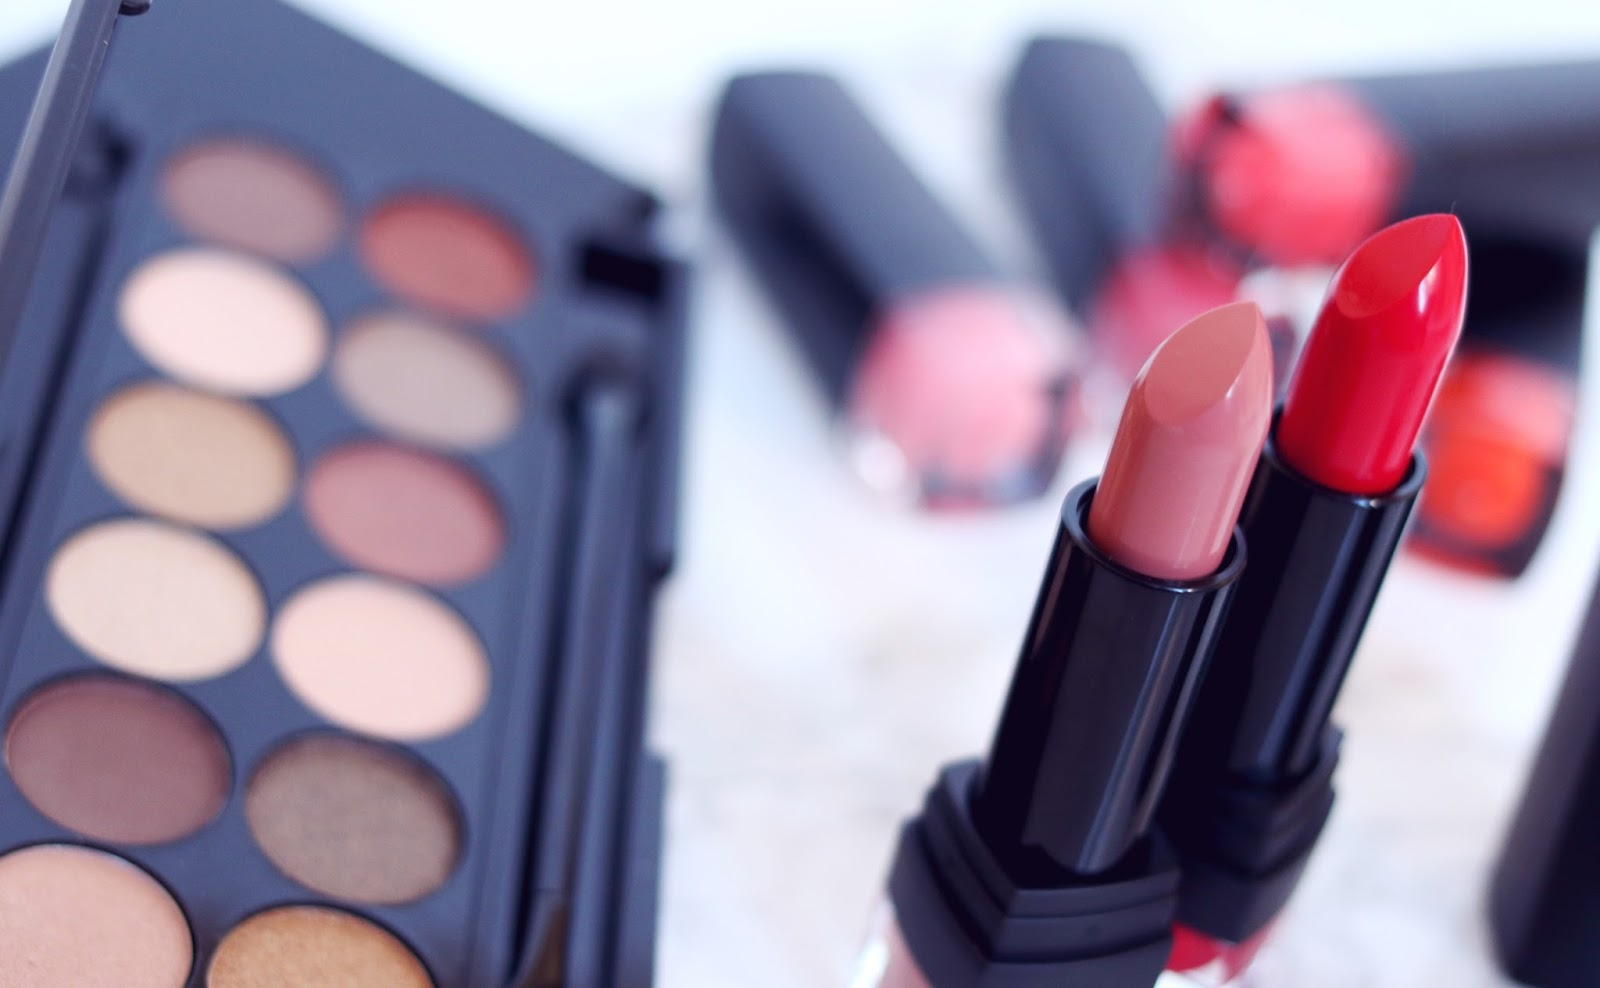 Sleek Makeup Lip VIP Lipsticks